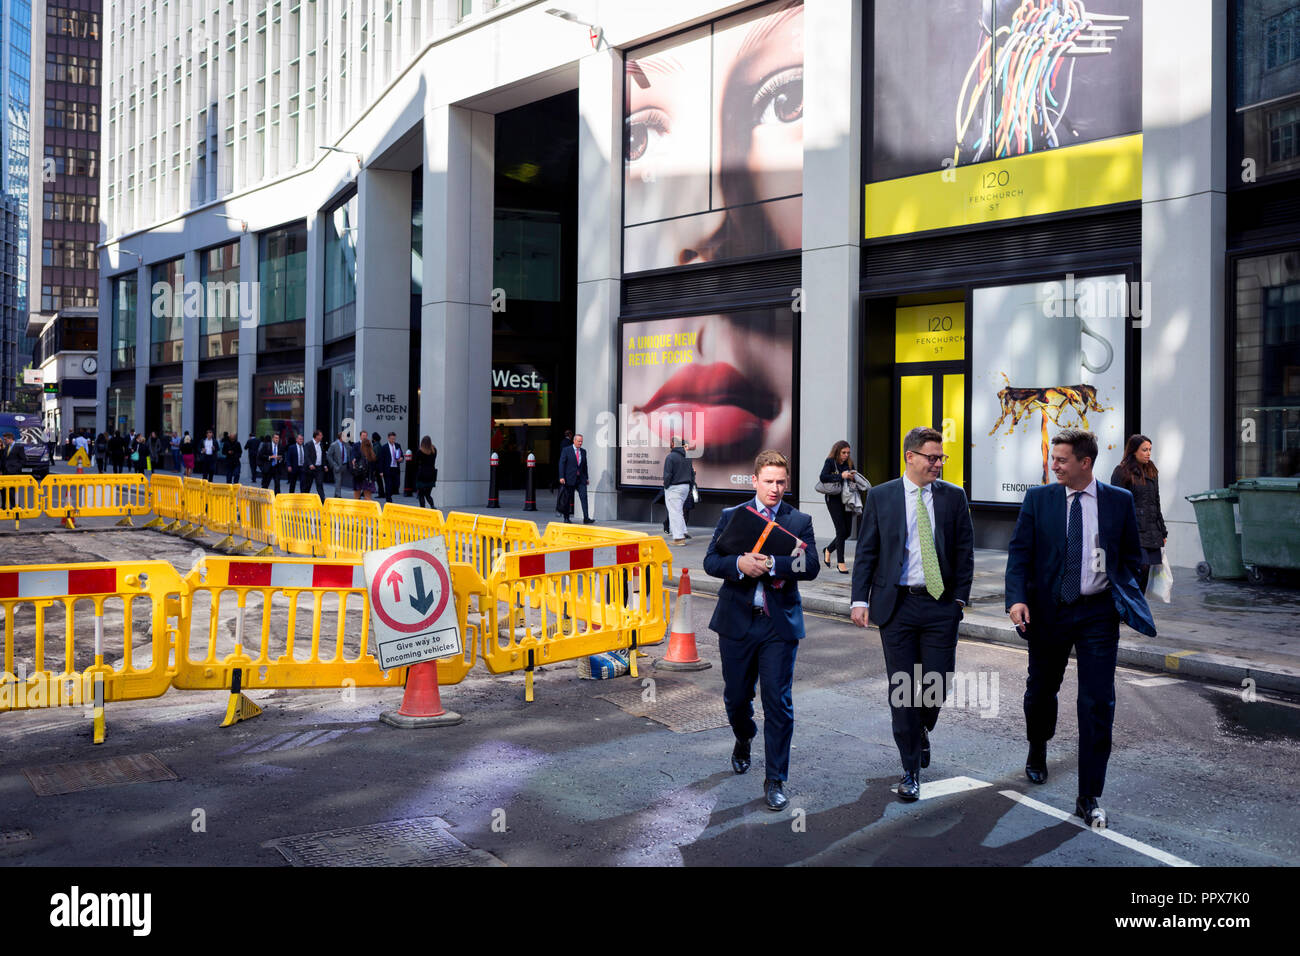 A pair of eyes and passers-by on Fenchurch Street - in the heart of the capital's financial district (aka The Square Mile), on 24th September 2018, in London, England. - Stock Image